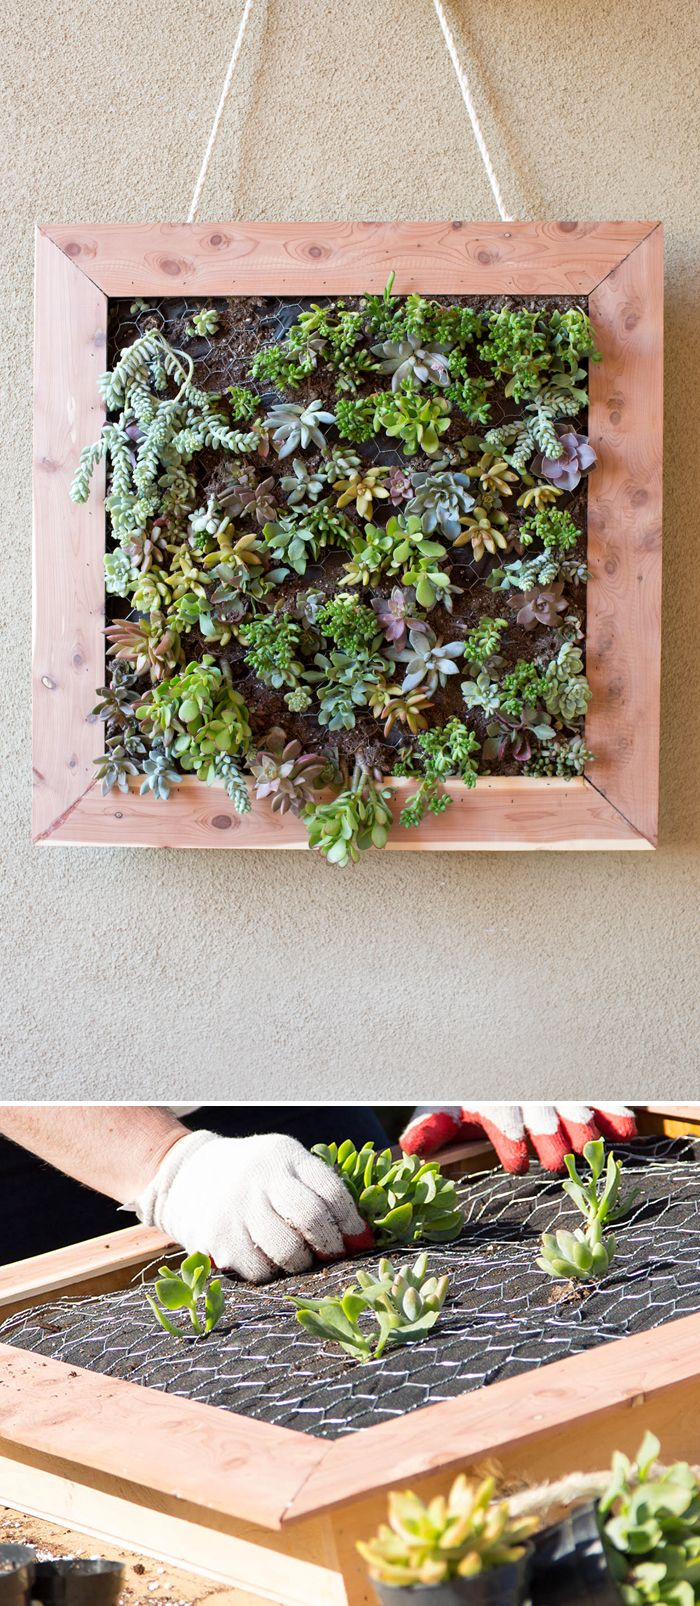 Turn Plants Into Art You Can Hang From Your Wall With This Diy Vertical Succulent Garden Visit The Home Depot Blog For Step By Instructions On How To